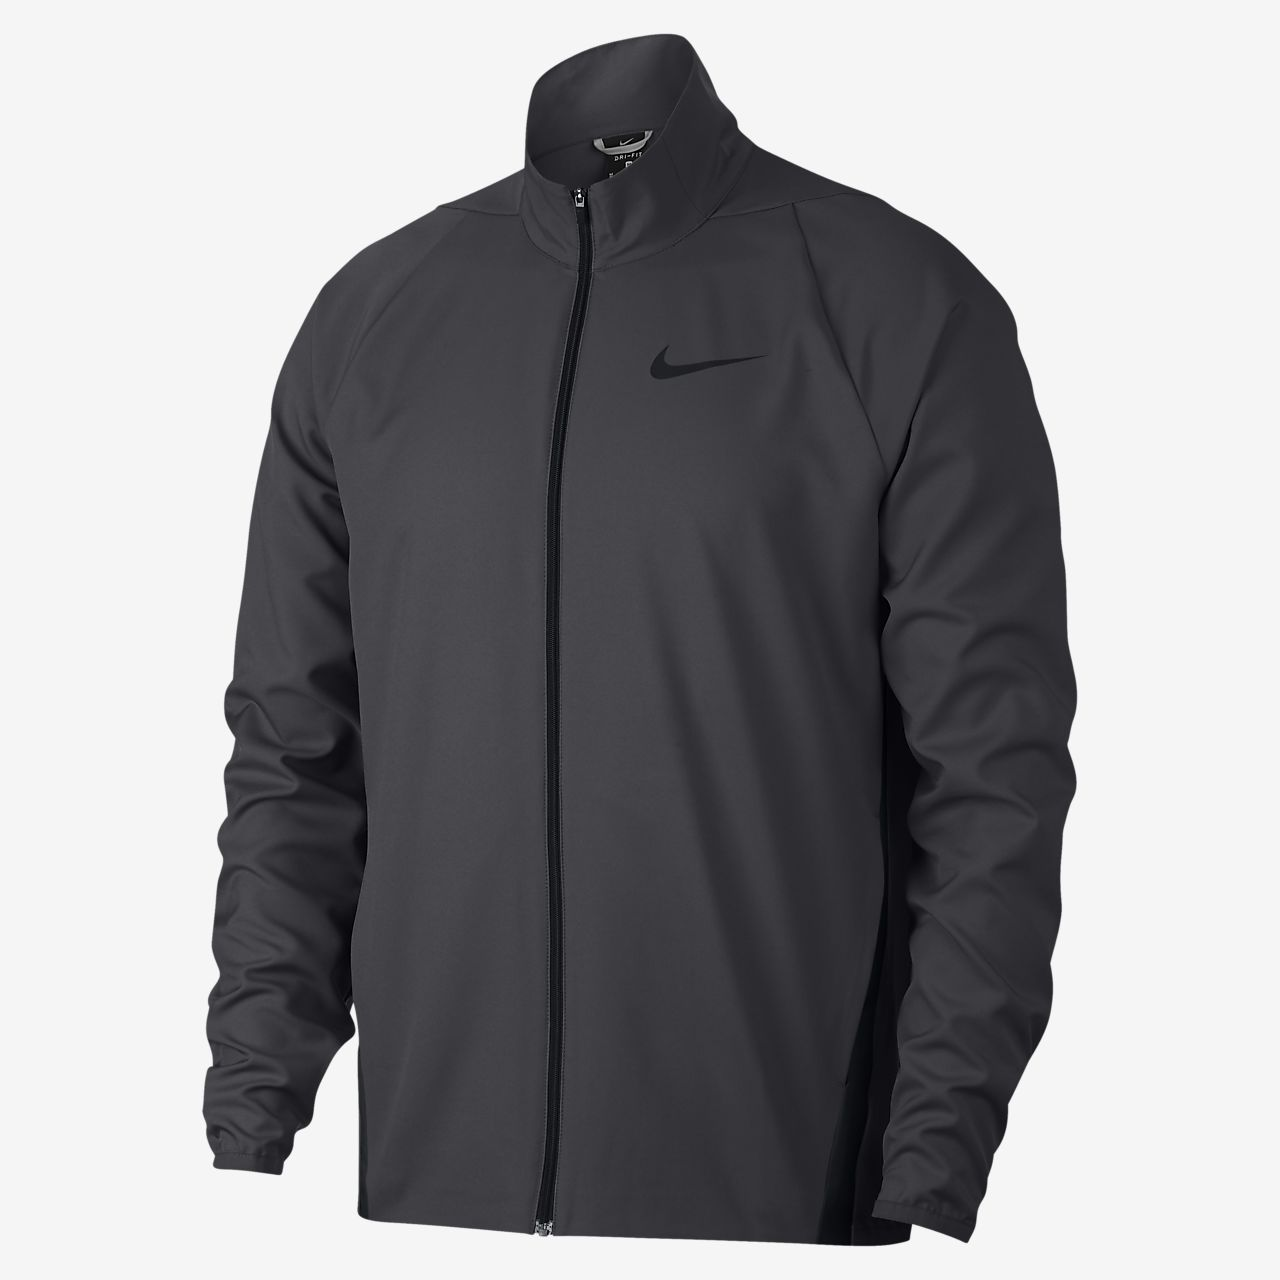 Overdraw North Specified  Nike Dri-FIT Men's Woven Training Jacket. Nike PT